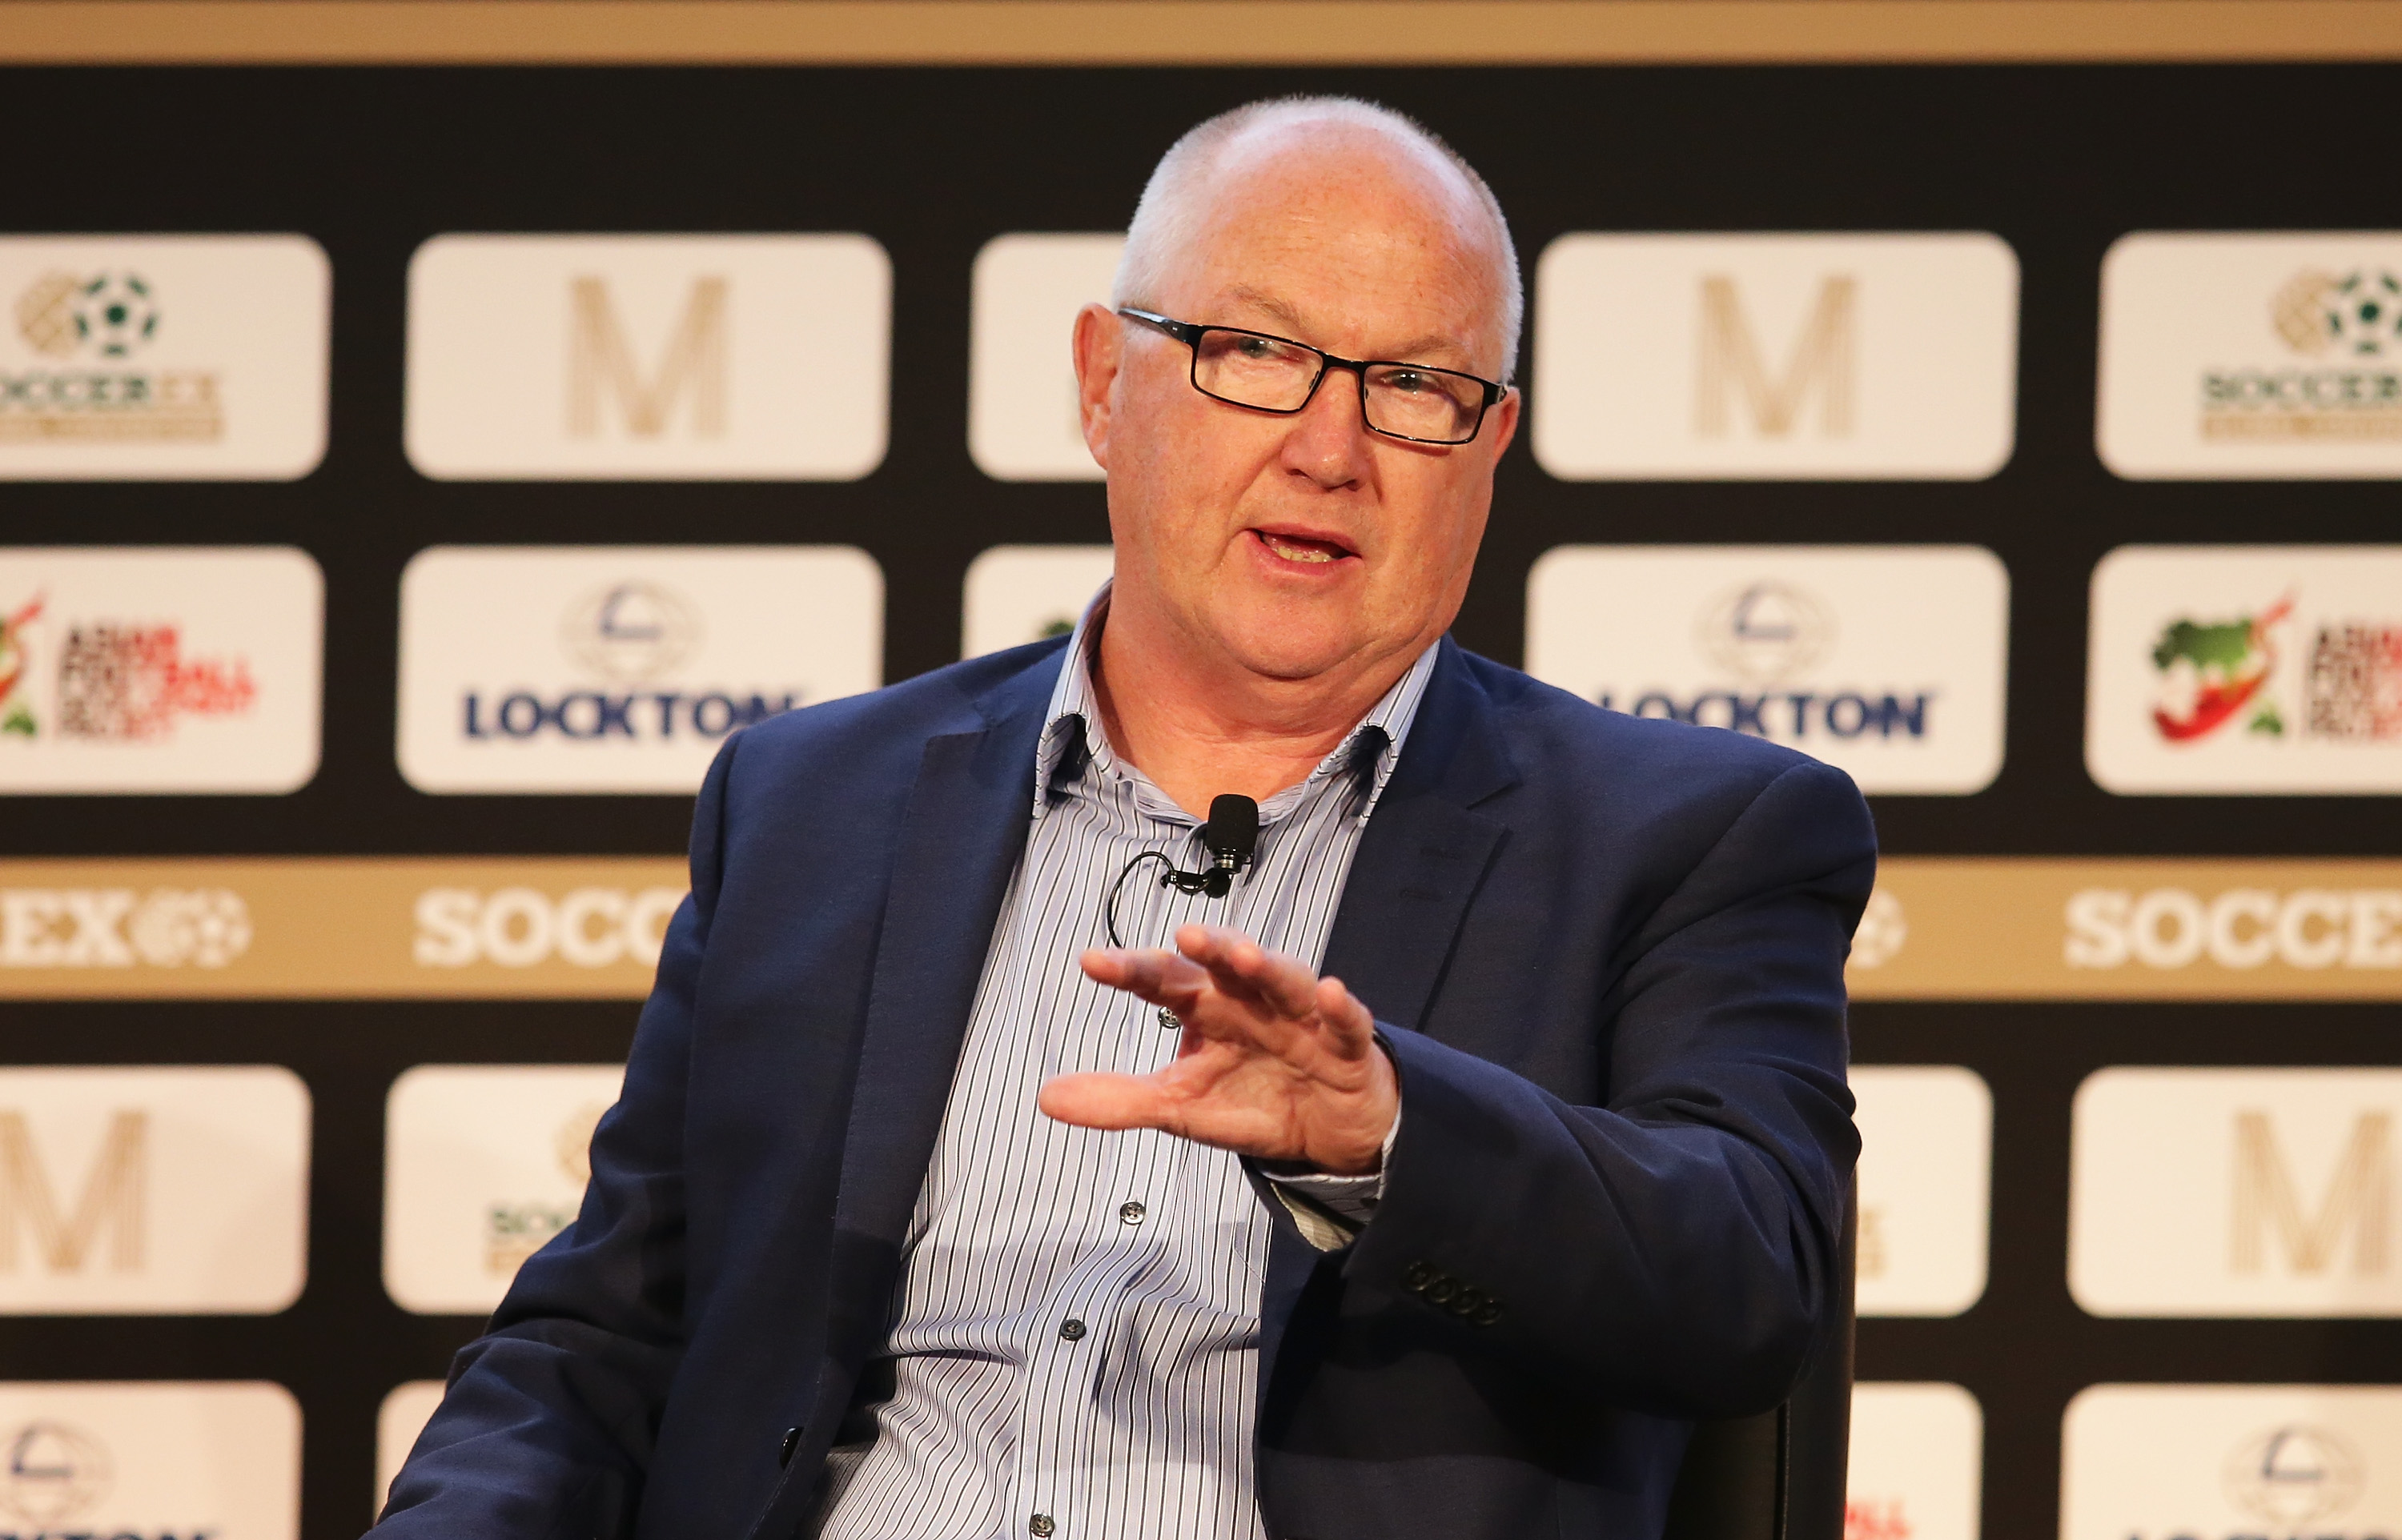 Soccerex Global Convention 2016 Day 1